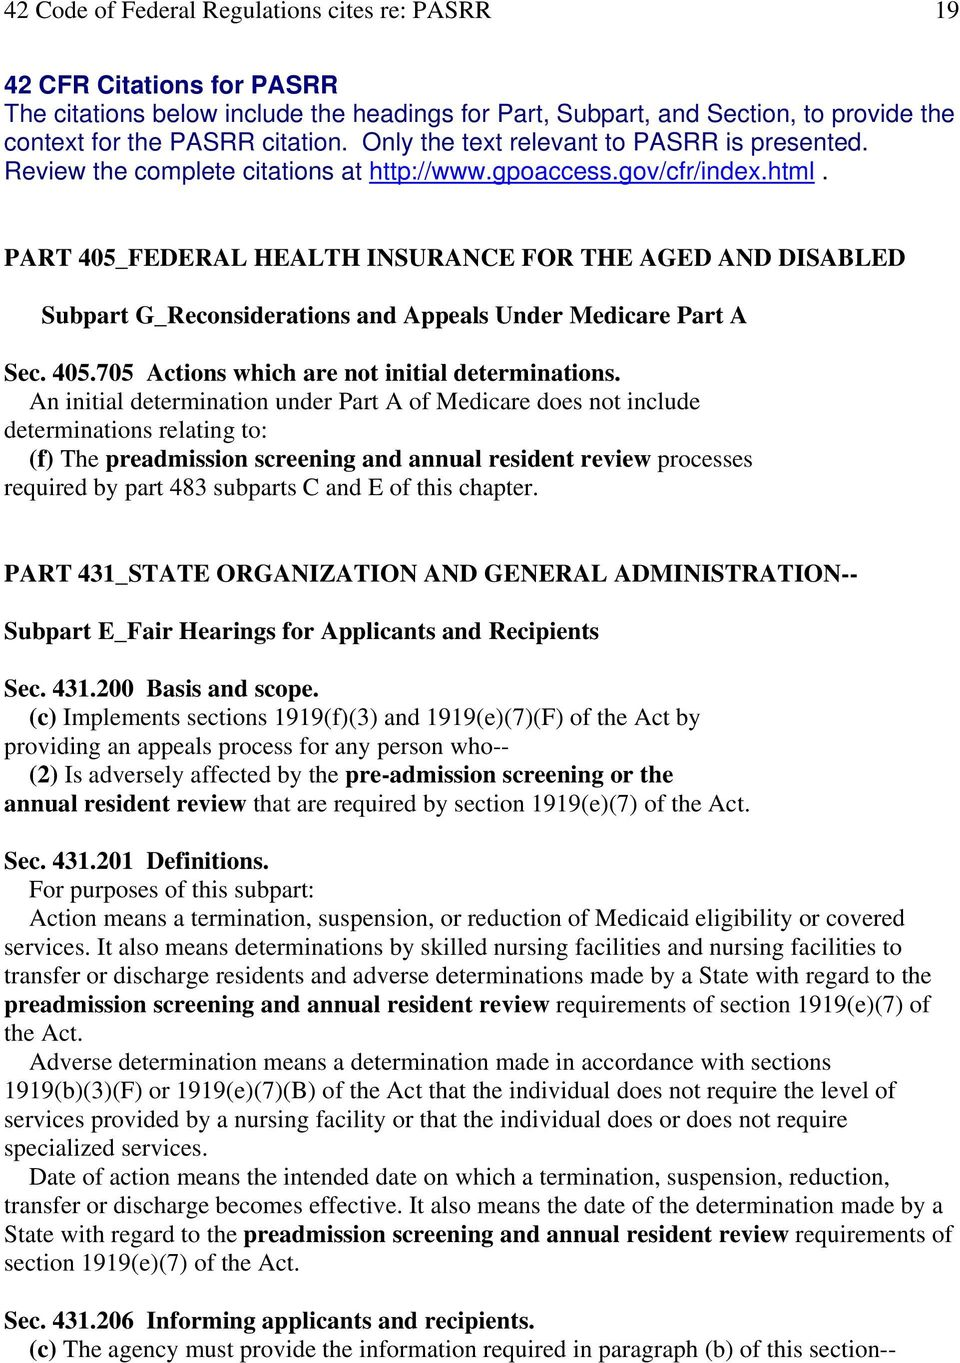 PART 405_FEDERAL HEALTH INSURANCE FOR THE AGED AND DISABLED Subpart G_Reconsiderations and Appeals Under Medicare Part A Sec. 405.705 Actions which are not initial determinations.